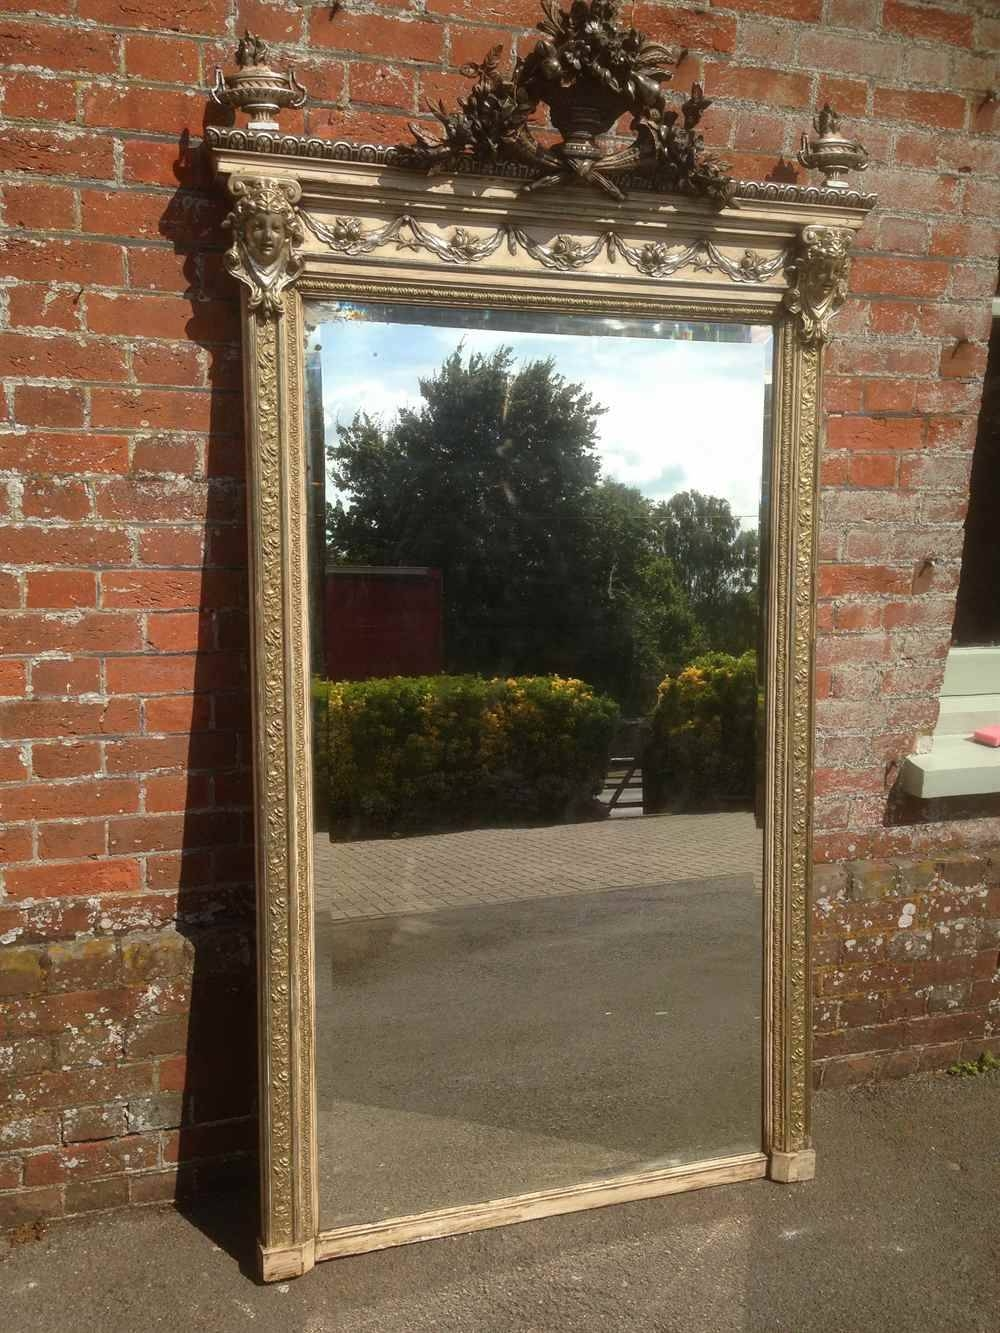 A Stunning Very Decorative Very Large Antique 19Th Century French Regarding Antique Large Mirrors (View 4 of 25)